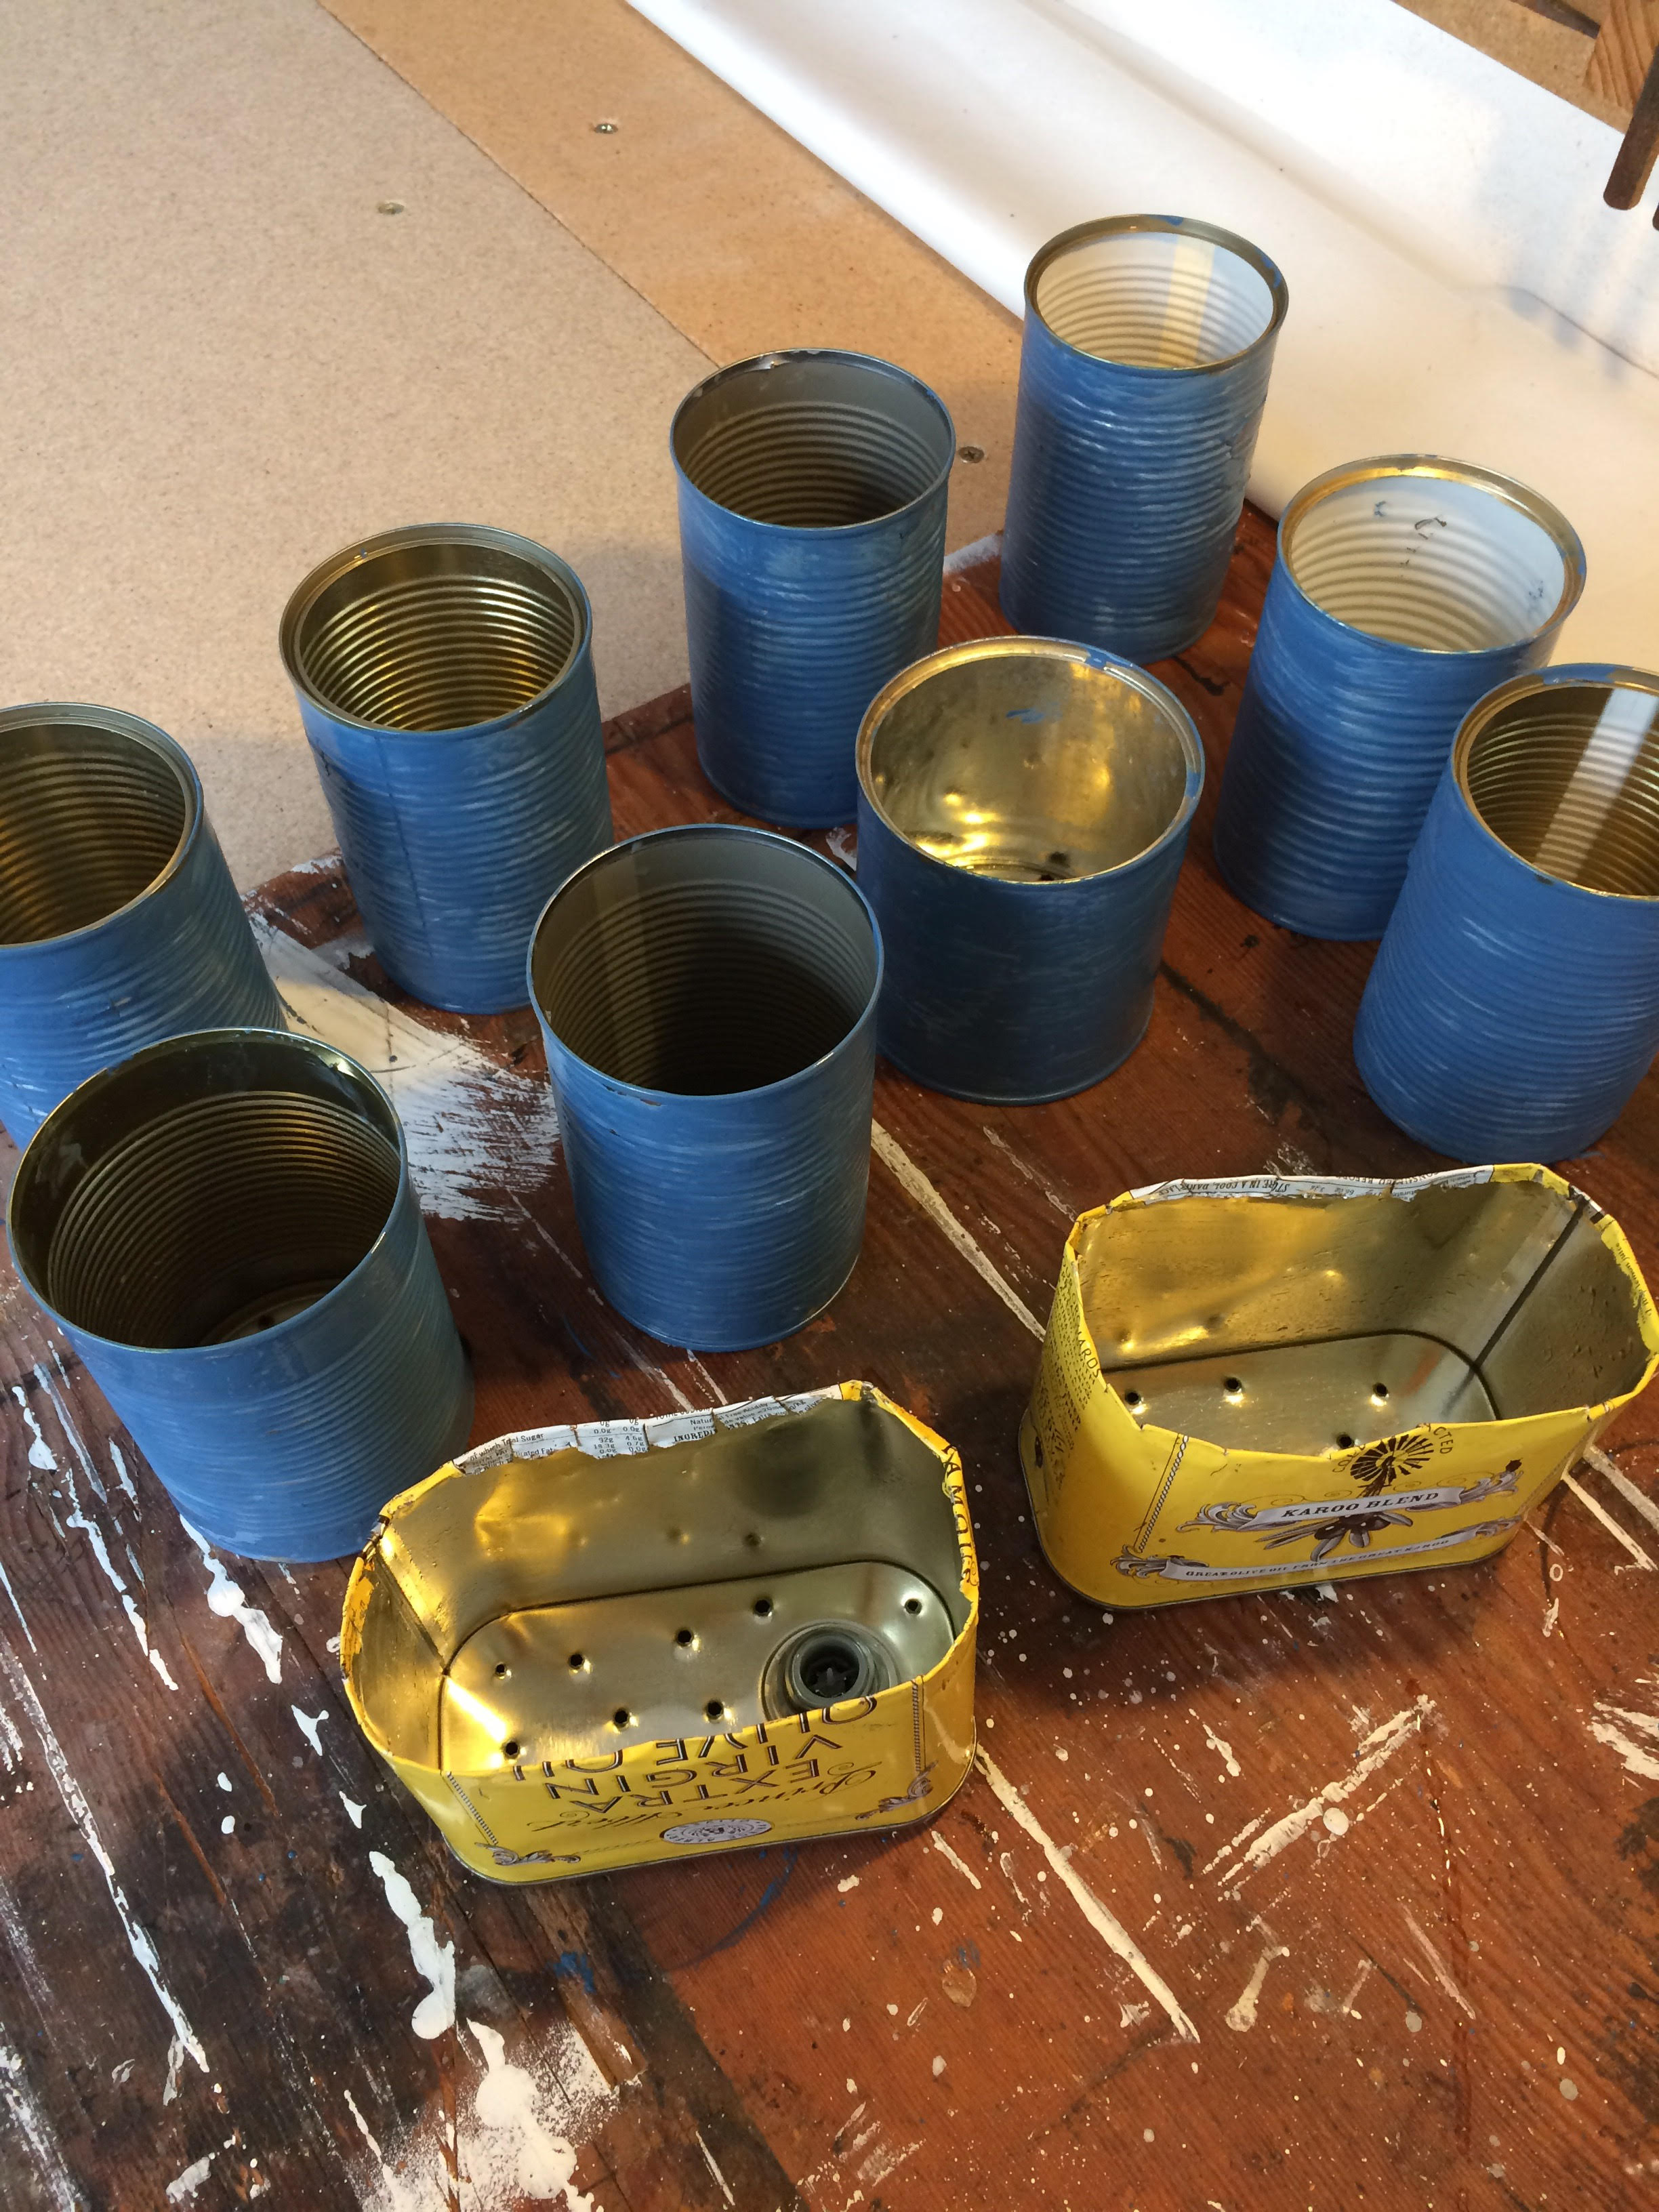 Paint some of the cans